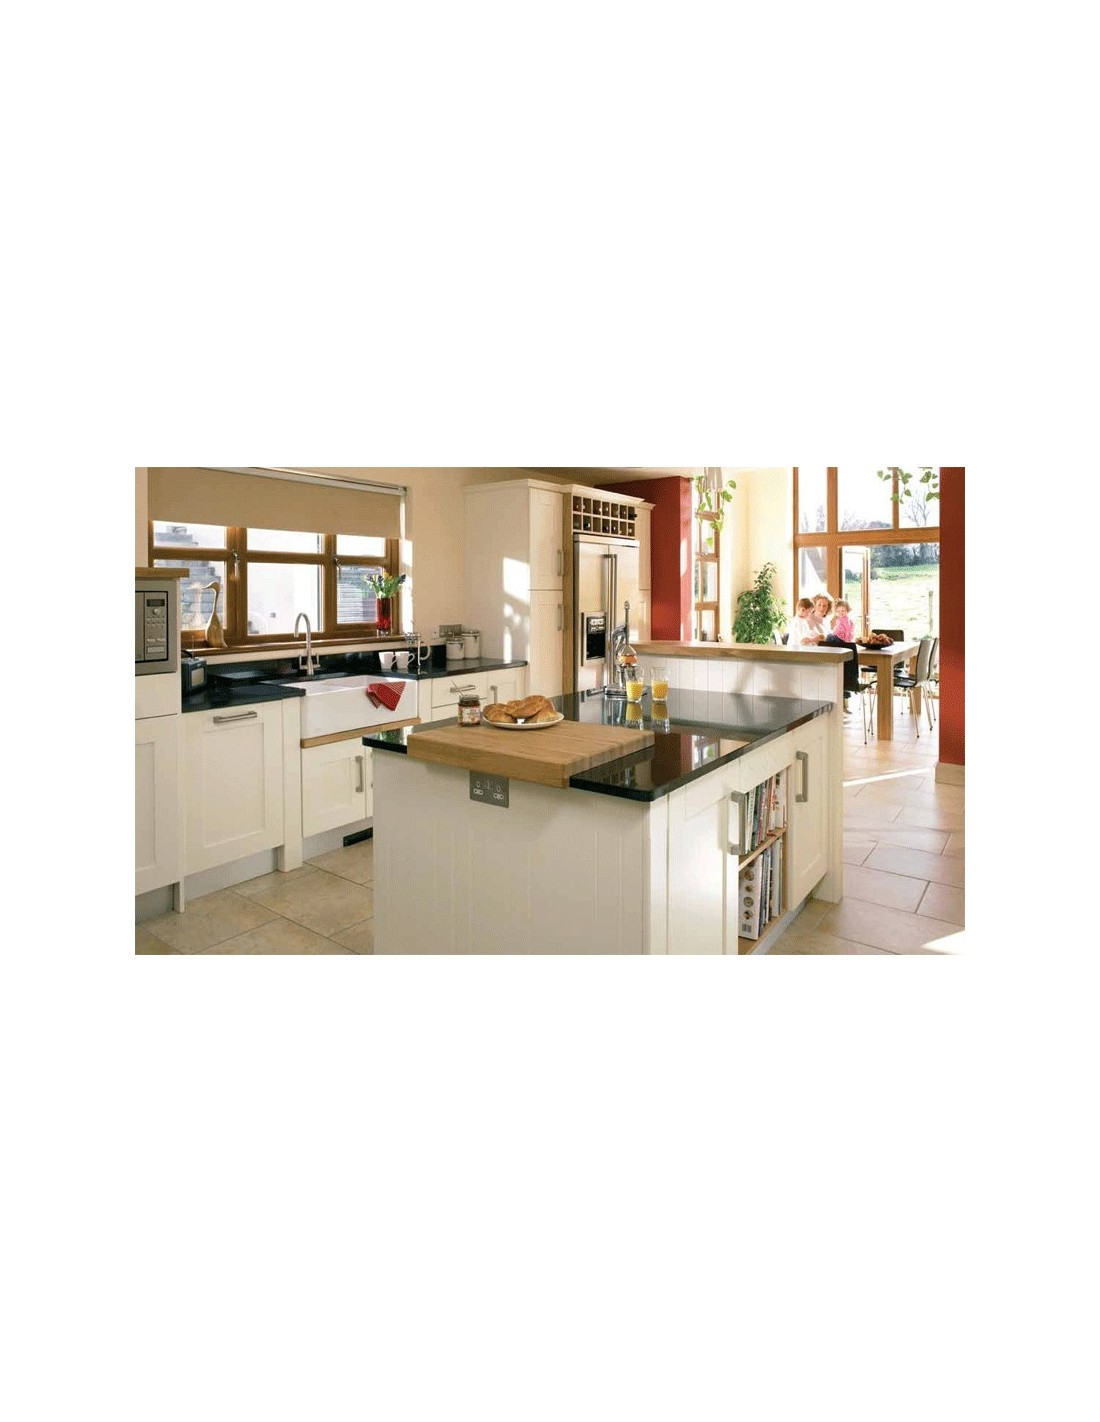 Complete kitchens east coast kitchens for Complete kitchens